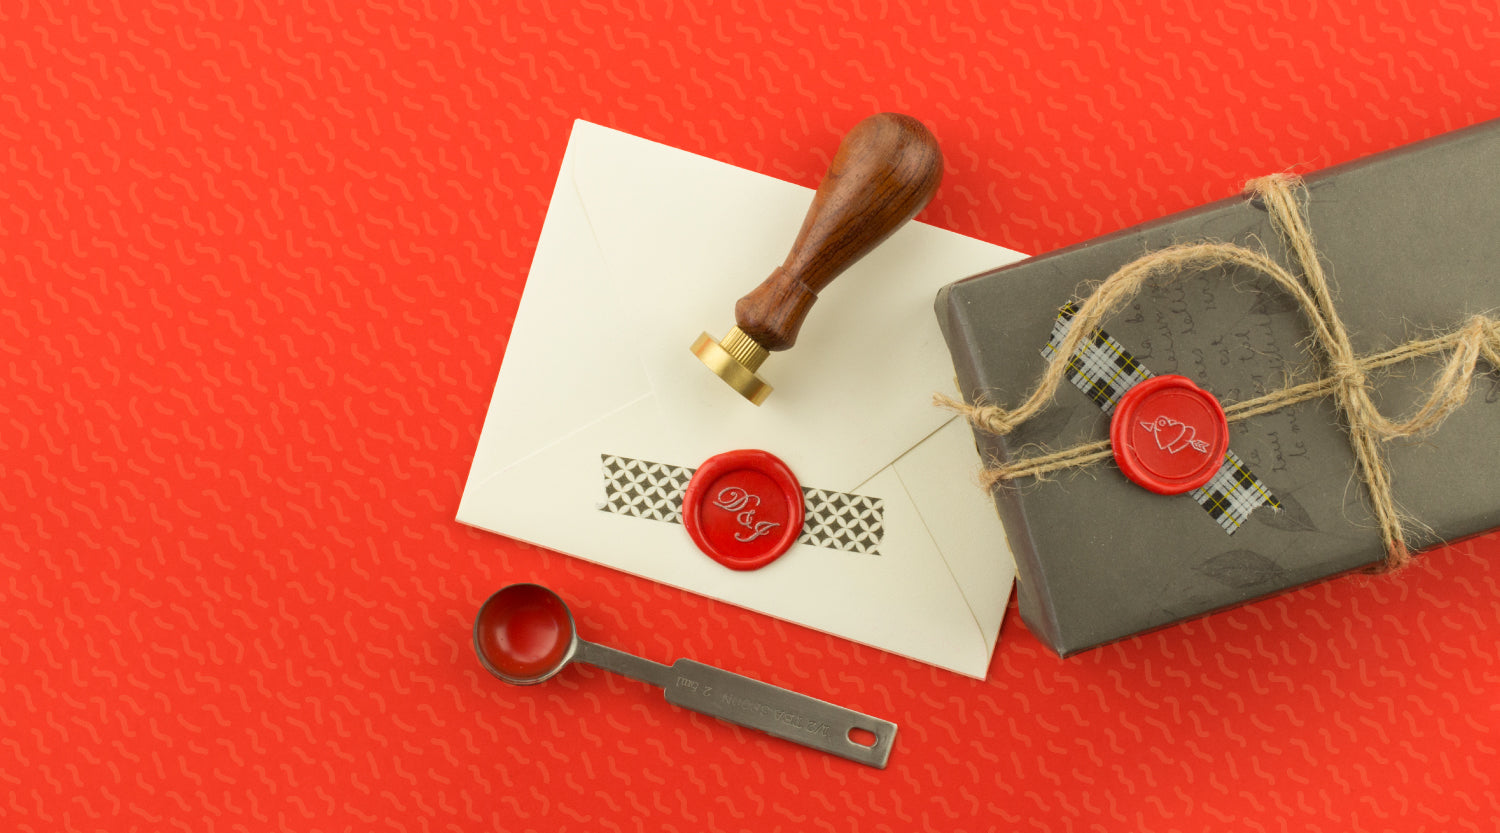 Create a double character wax seal stamp for someone special.